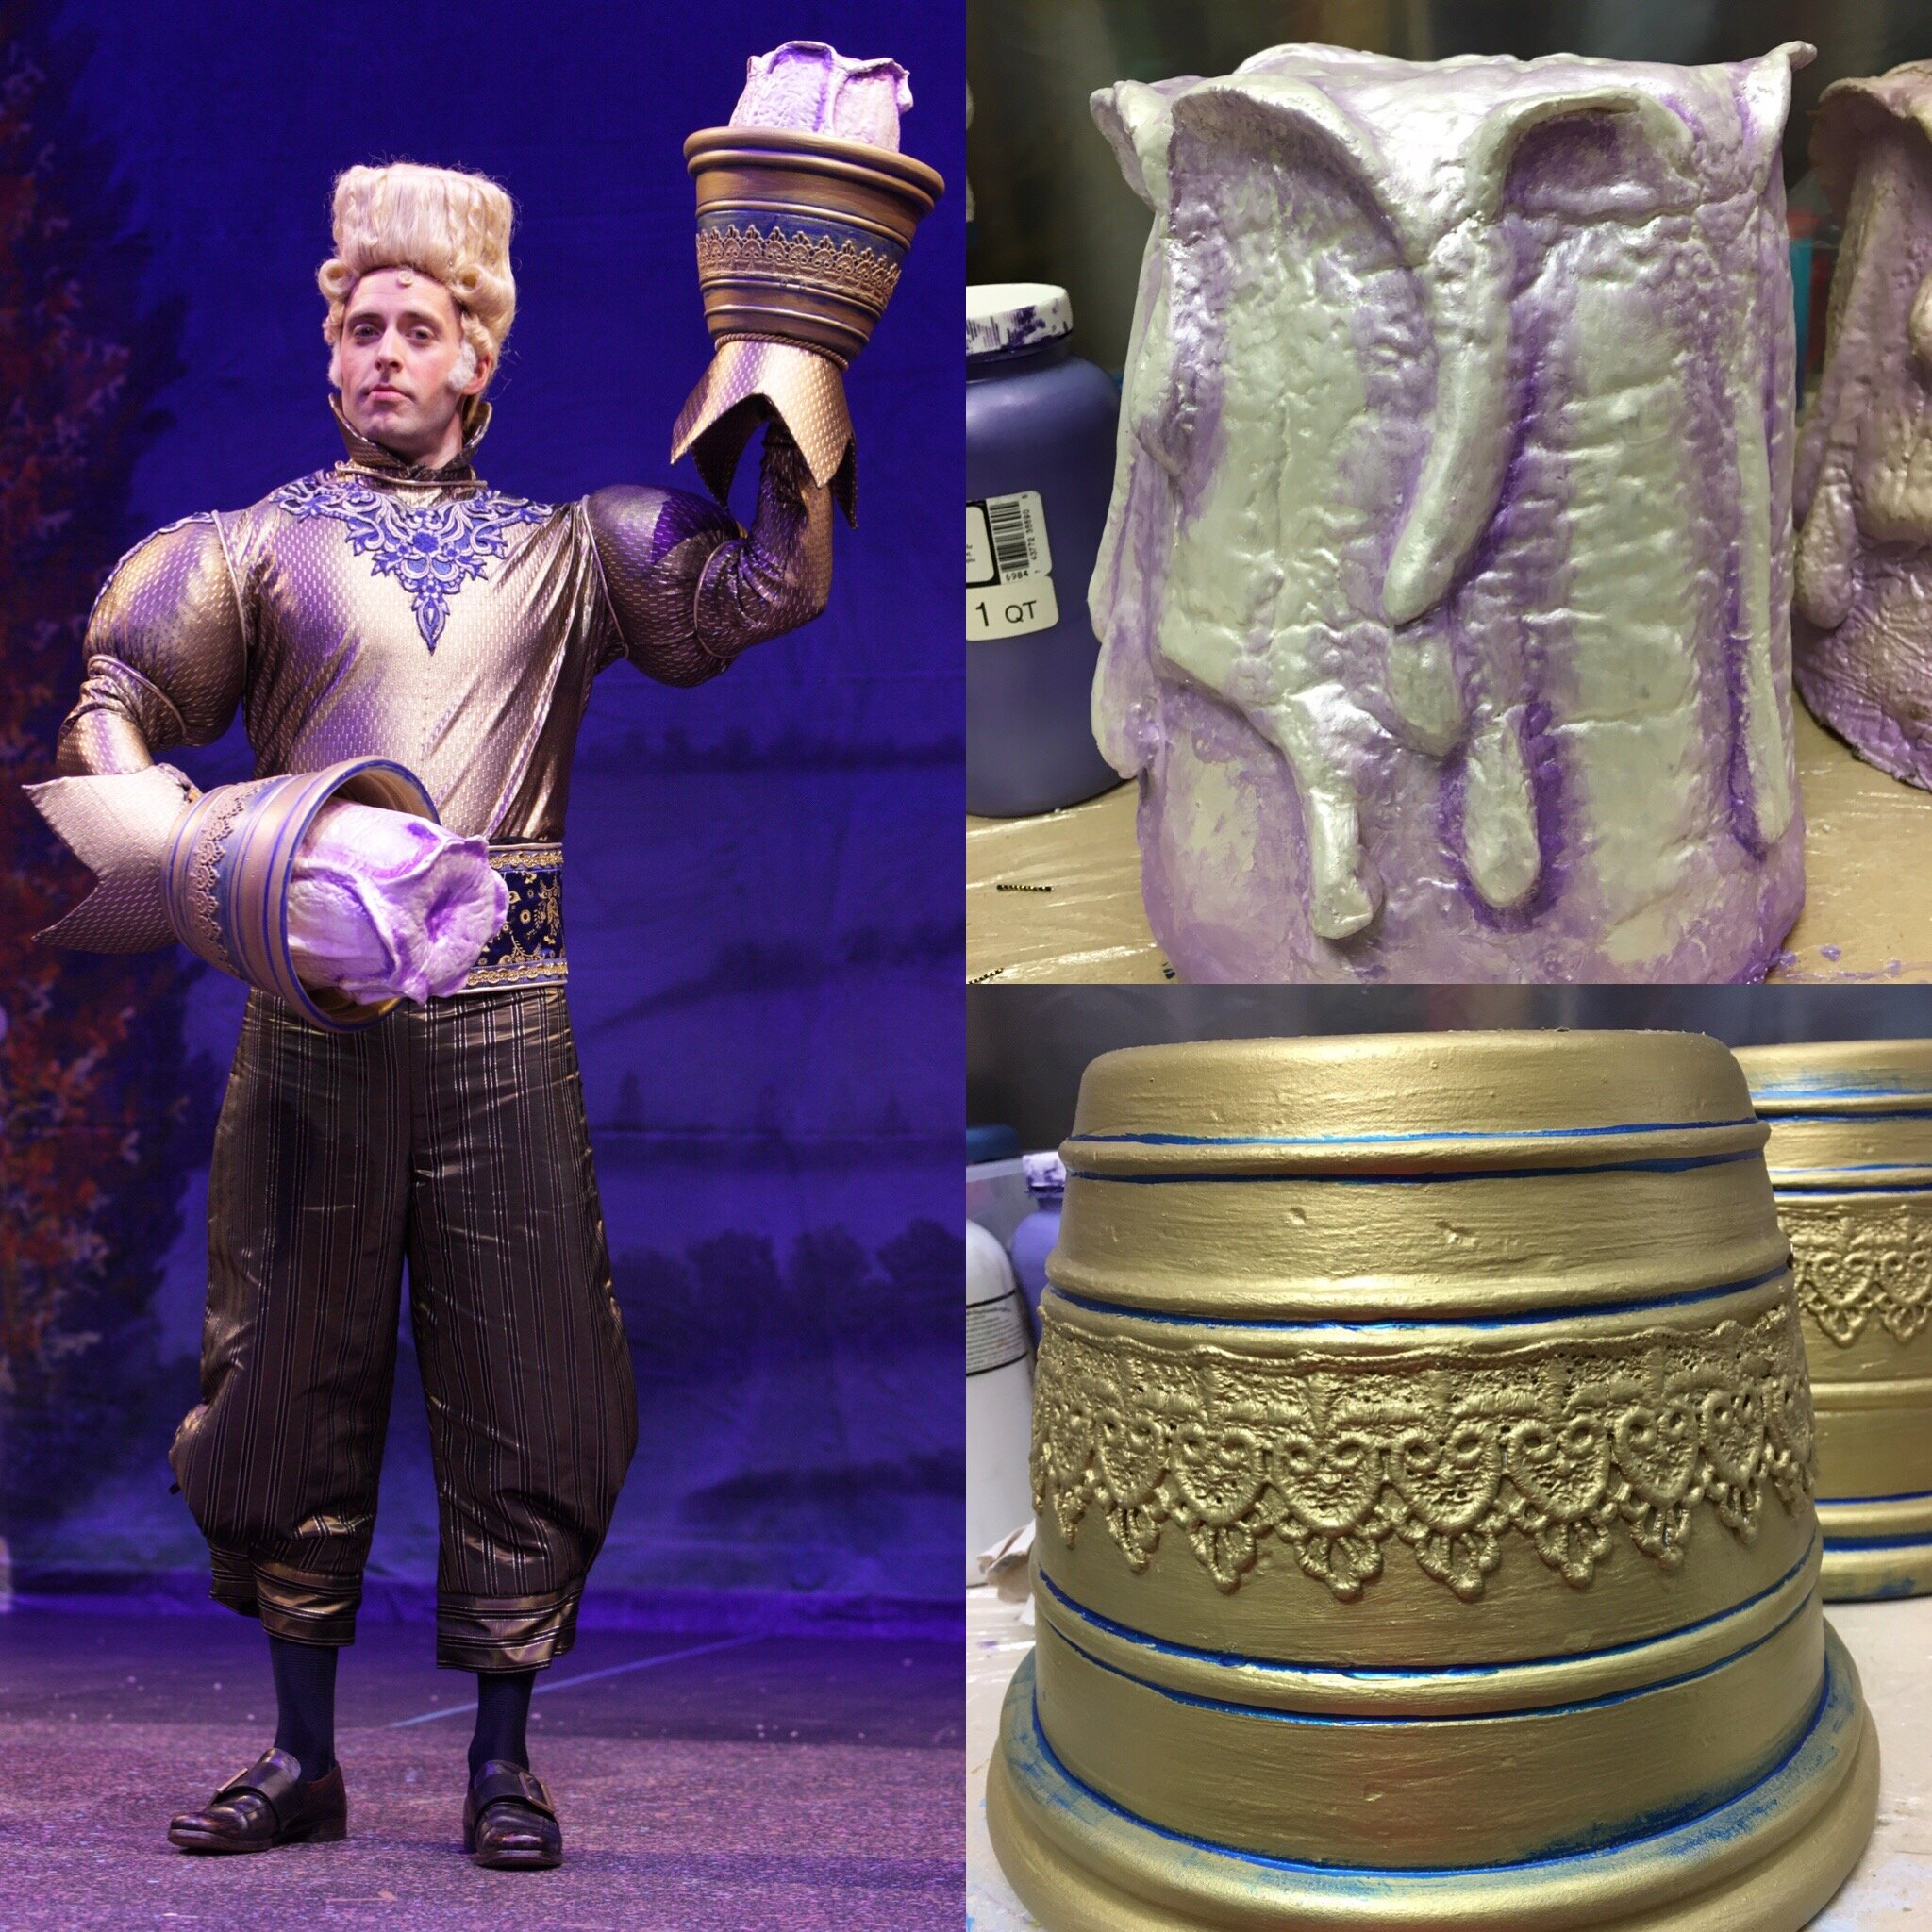 Lumiere's Hands(Paint)- Beauty and the Beast -Music Theatre Wichita 2016  Costume Design by Tiia Torchia Lager.All designs by the summer staff of MTW. Photos Courtesy of Christopher Clark and Jerry Fritchman.